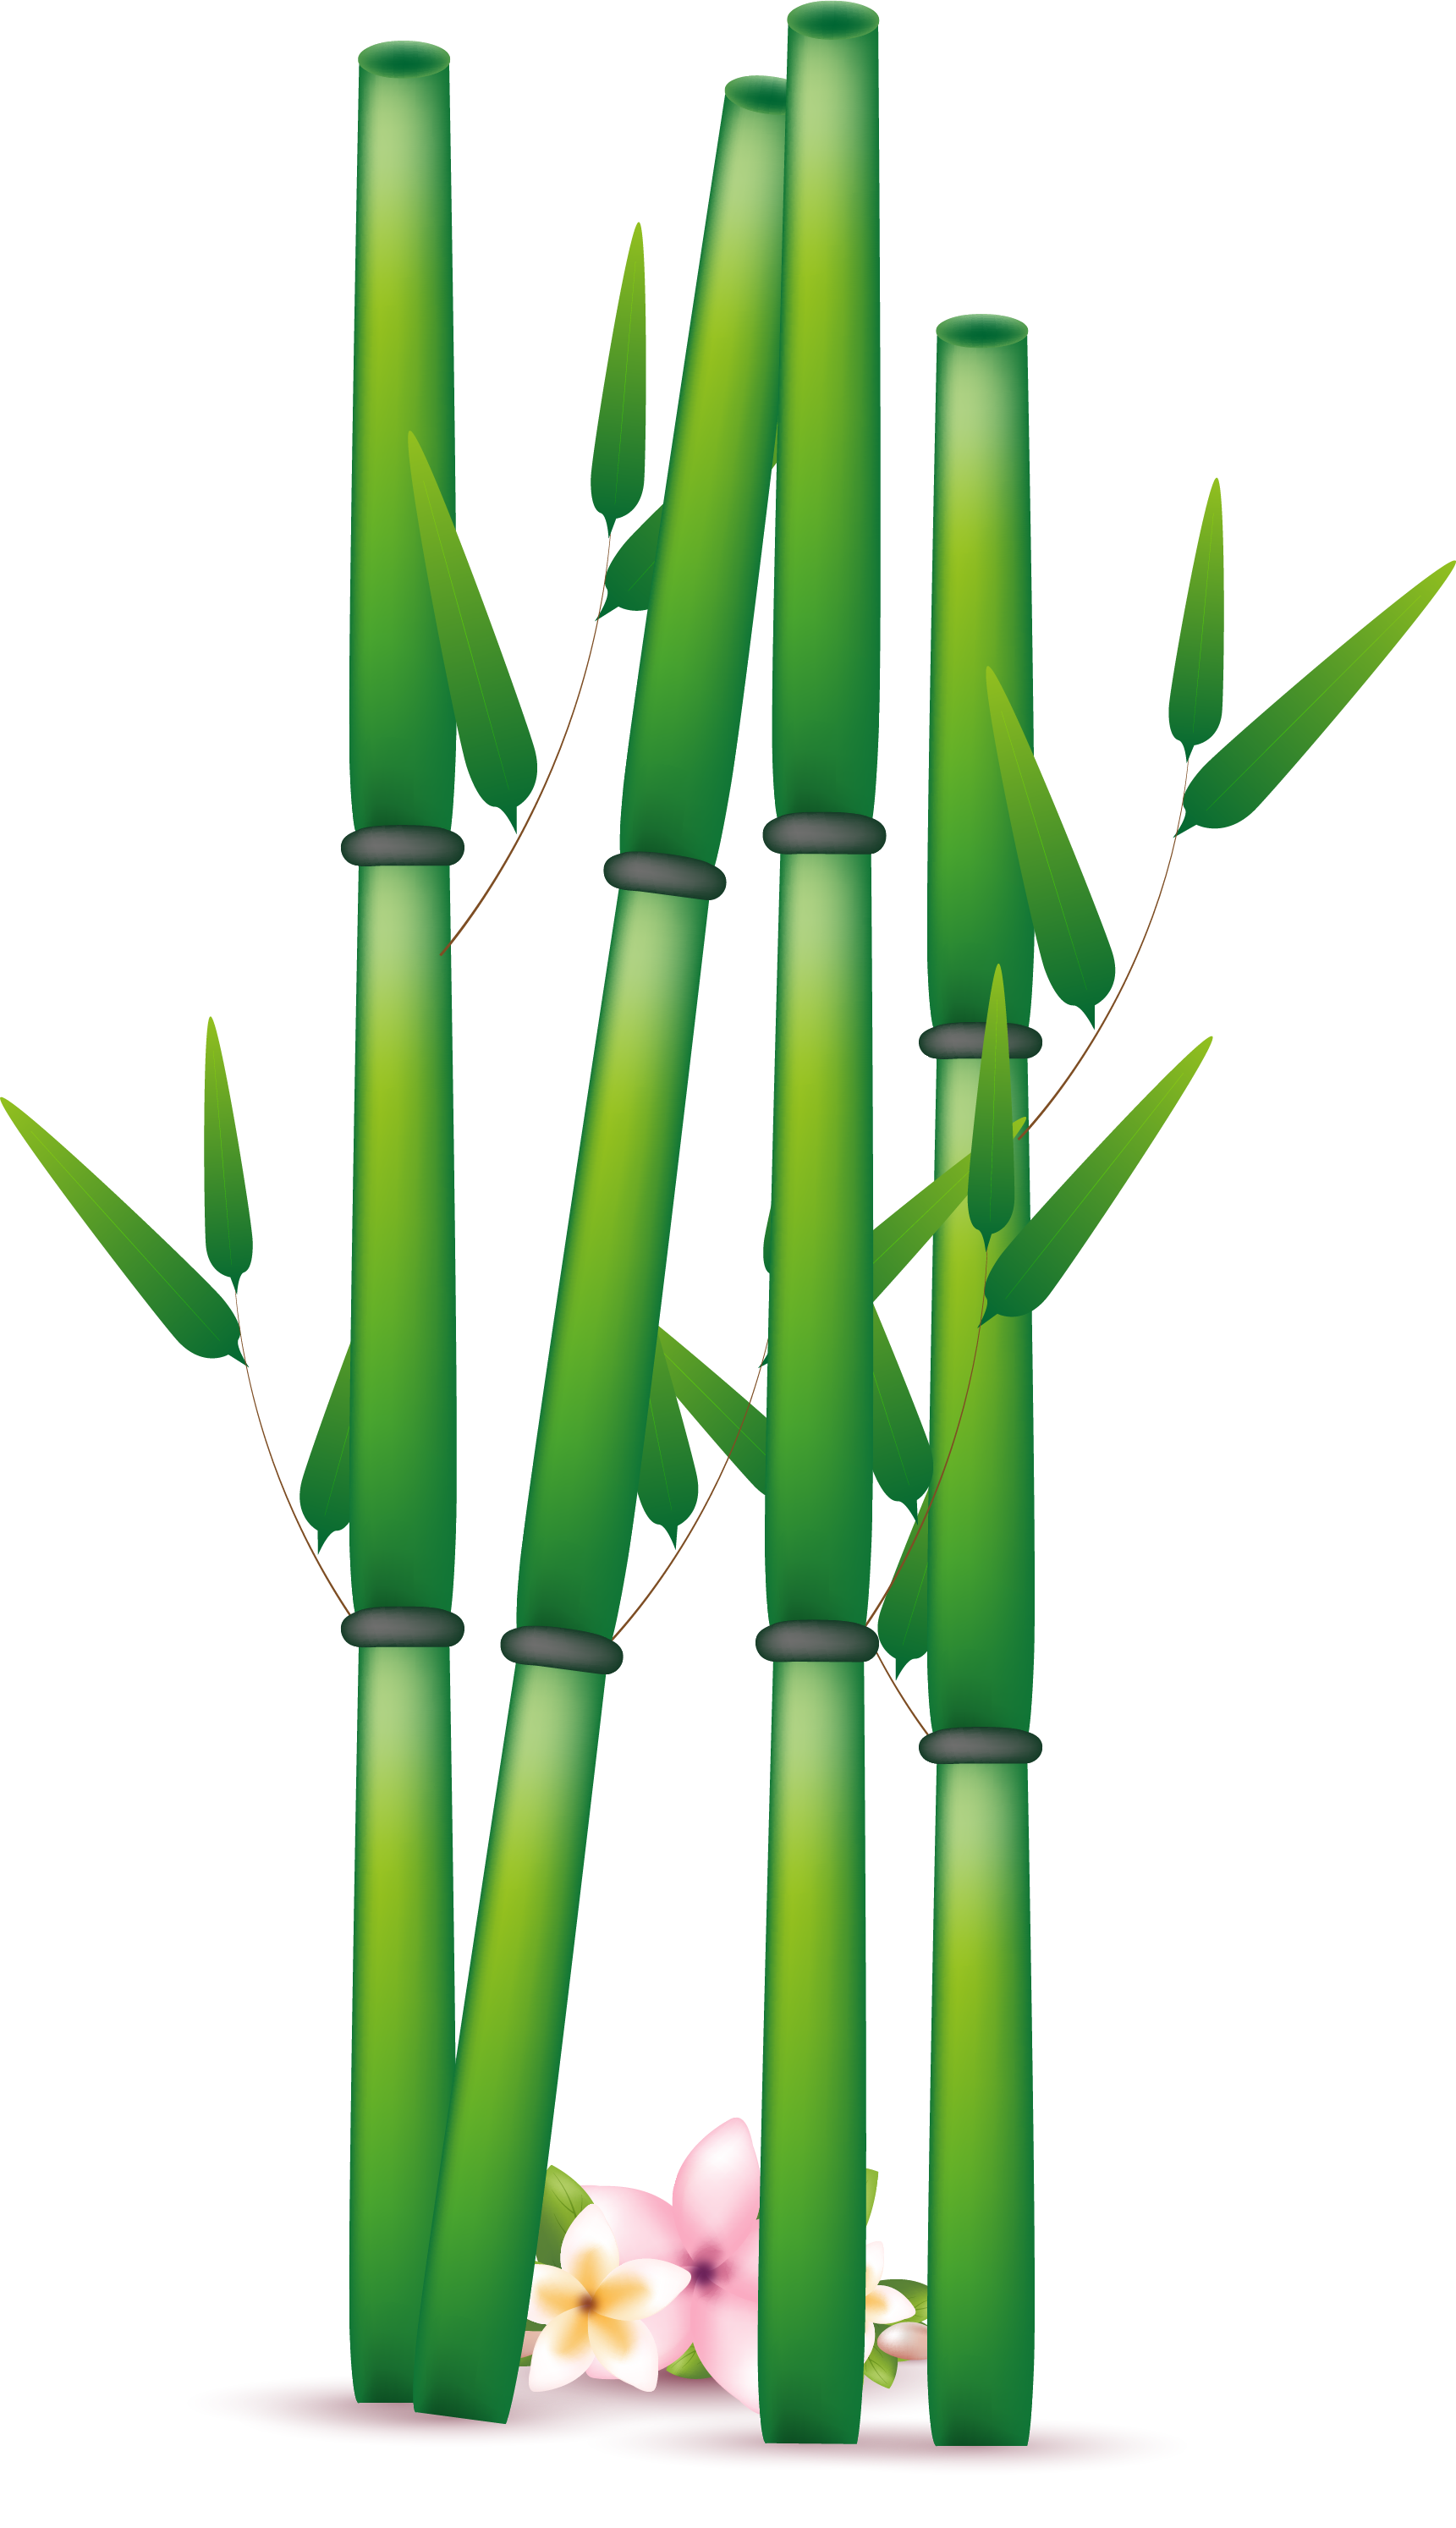 Bamboo tree clipart picture royalty free stock Bamboo PNG Transparent Free Images | PNG Only picture royalty free stock